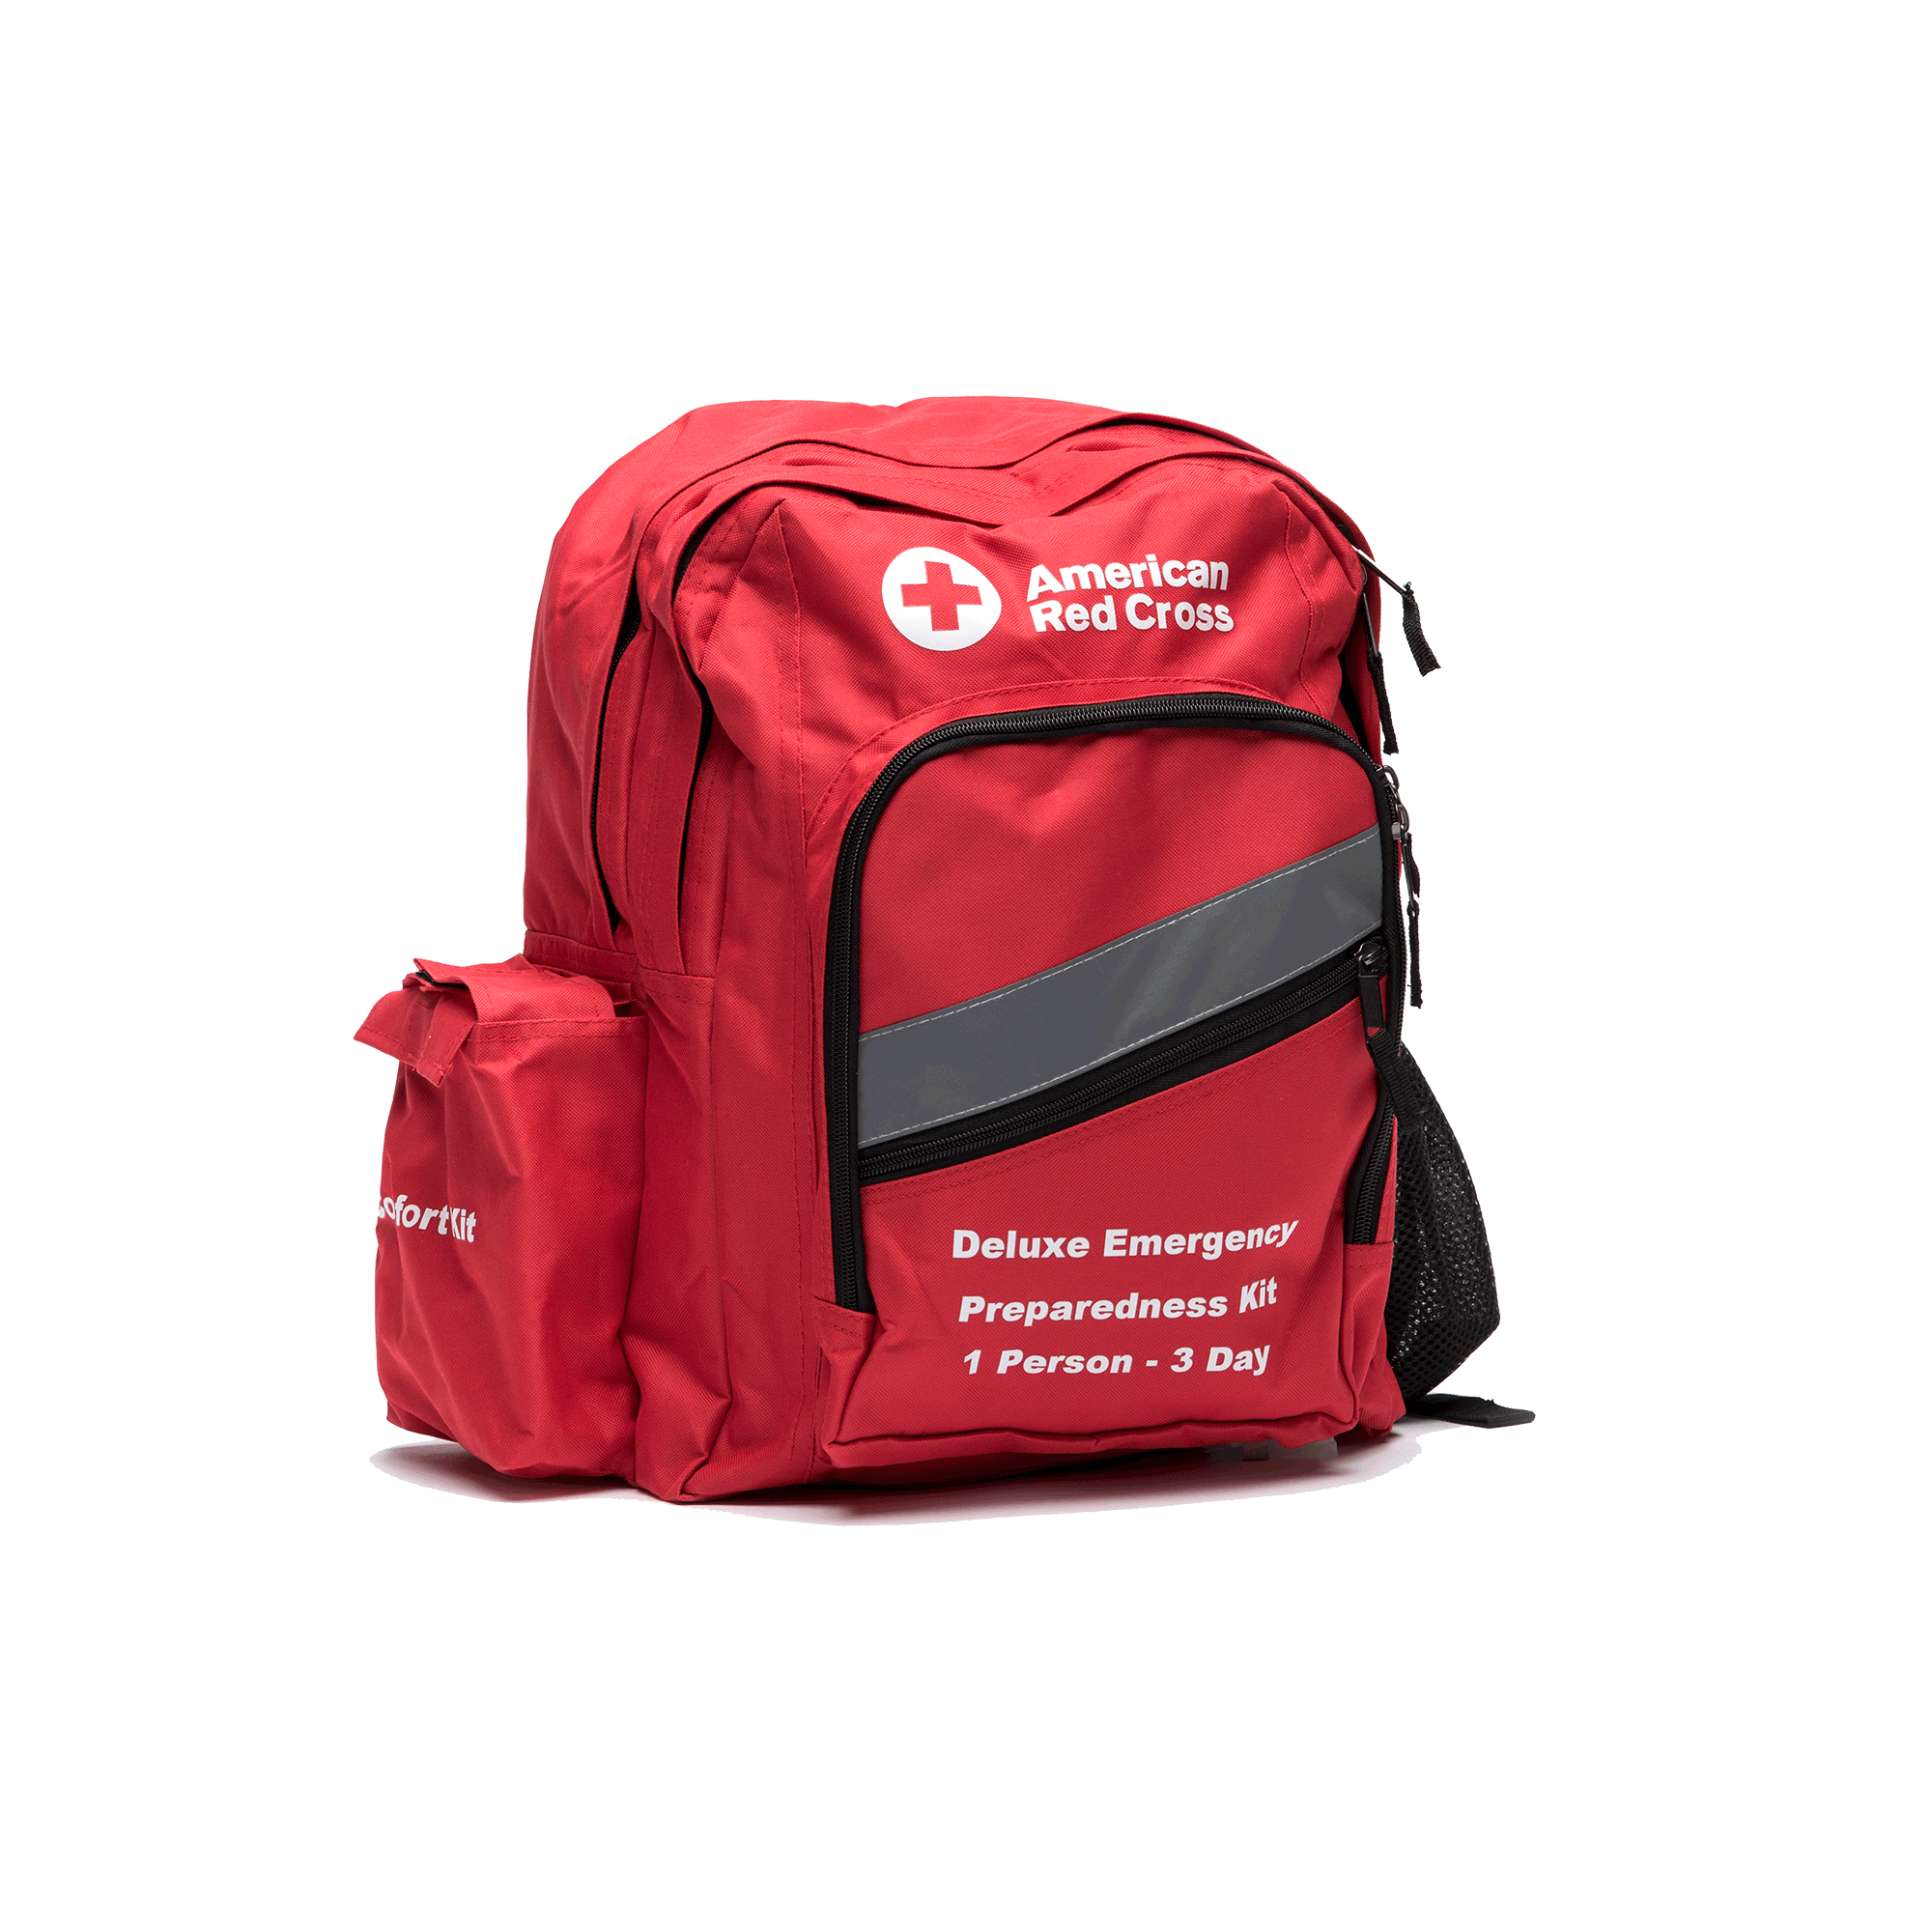 Red Cross Backpack First Aid Kit Medical Emergency Survival bag Best Selling FRE